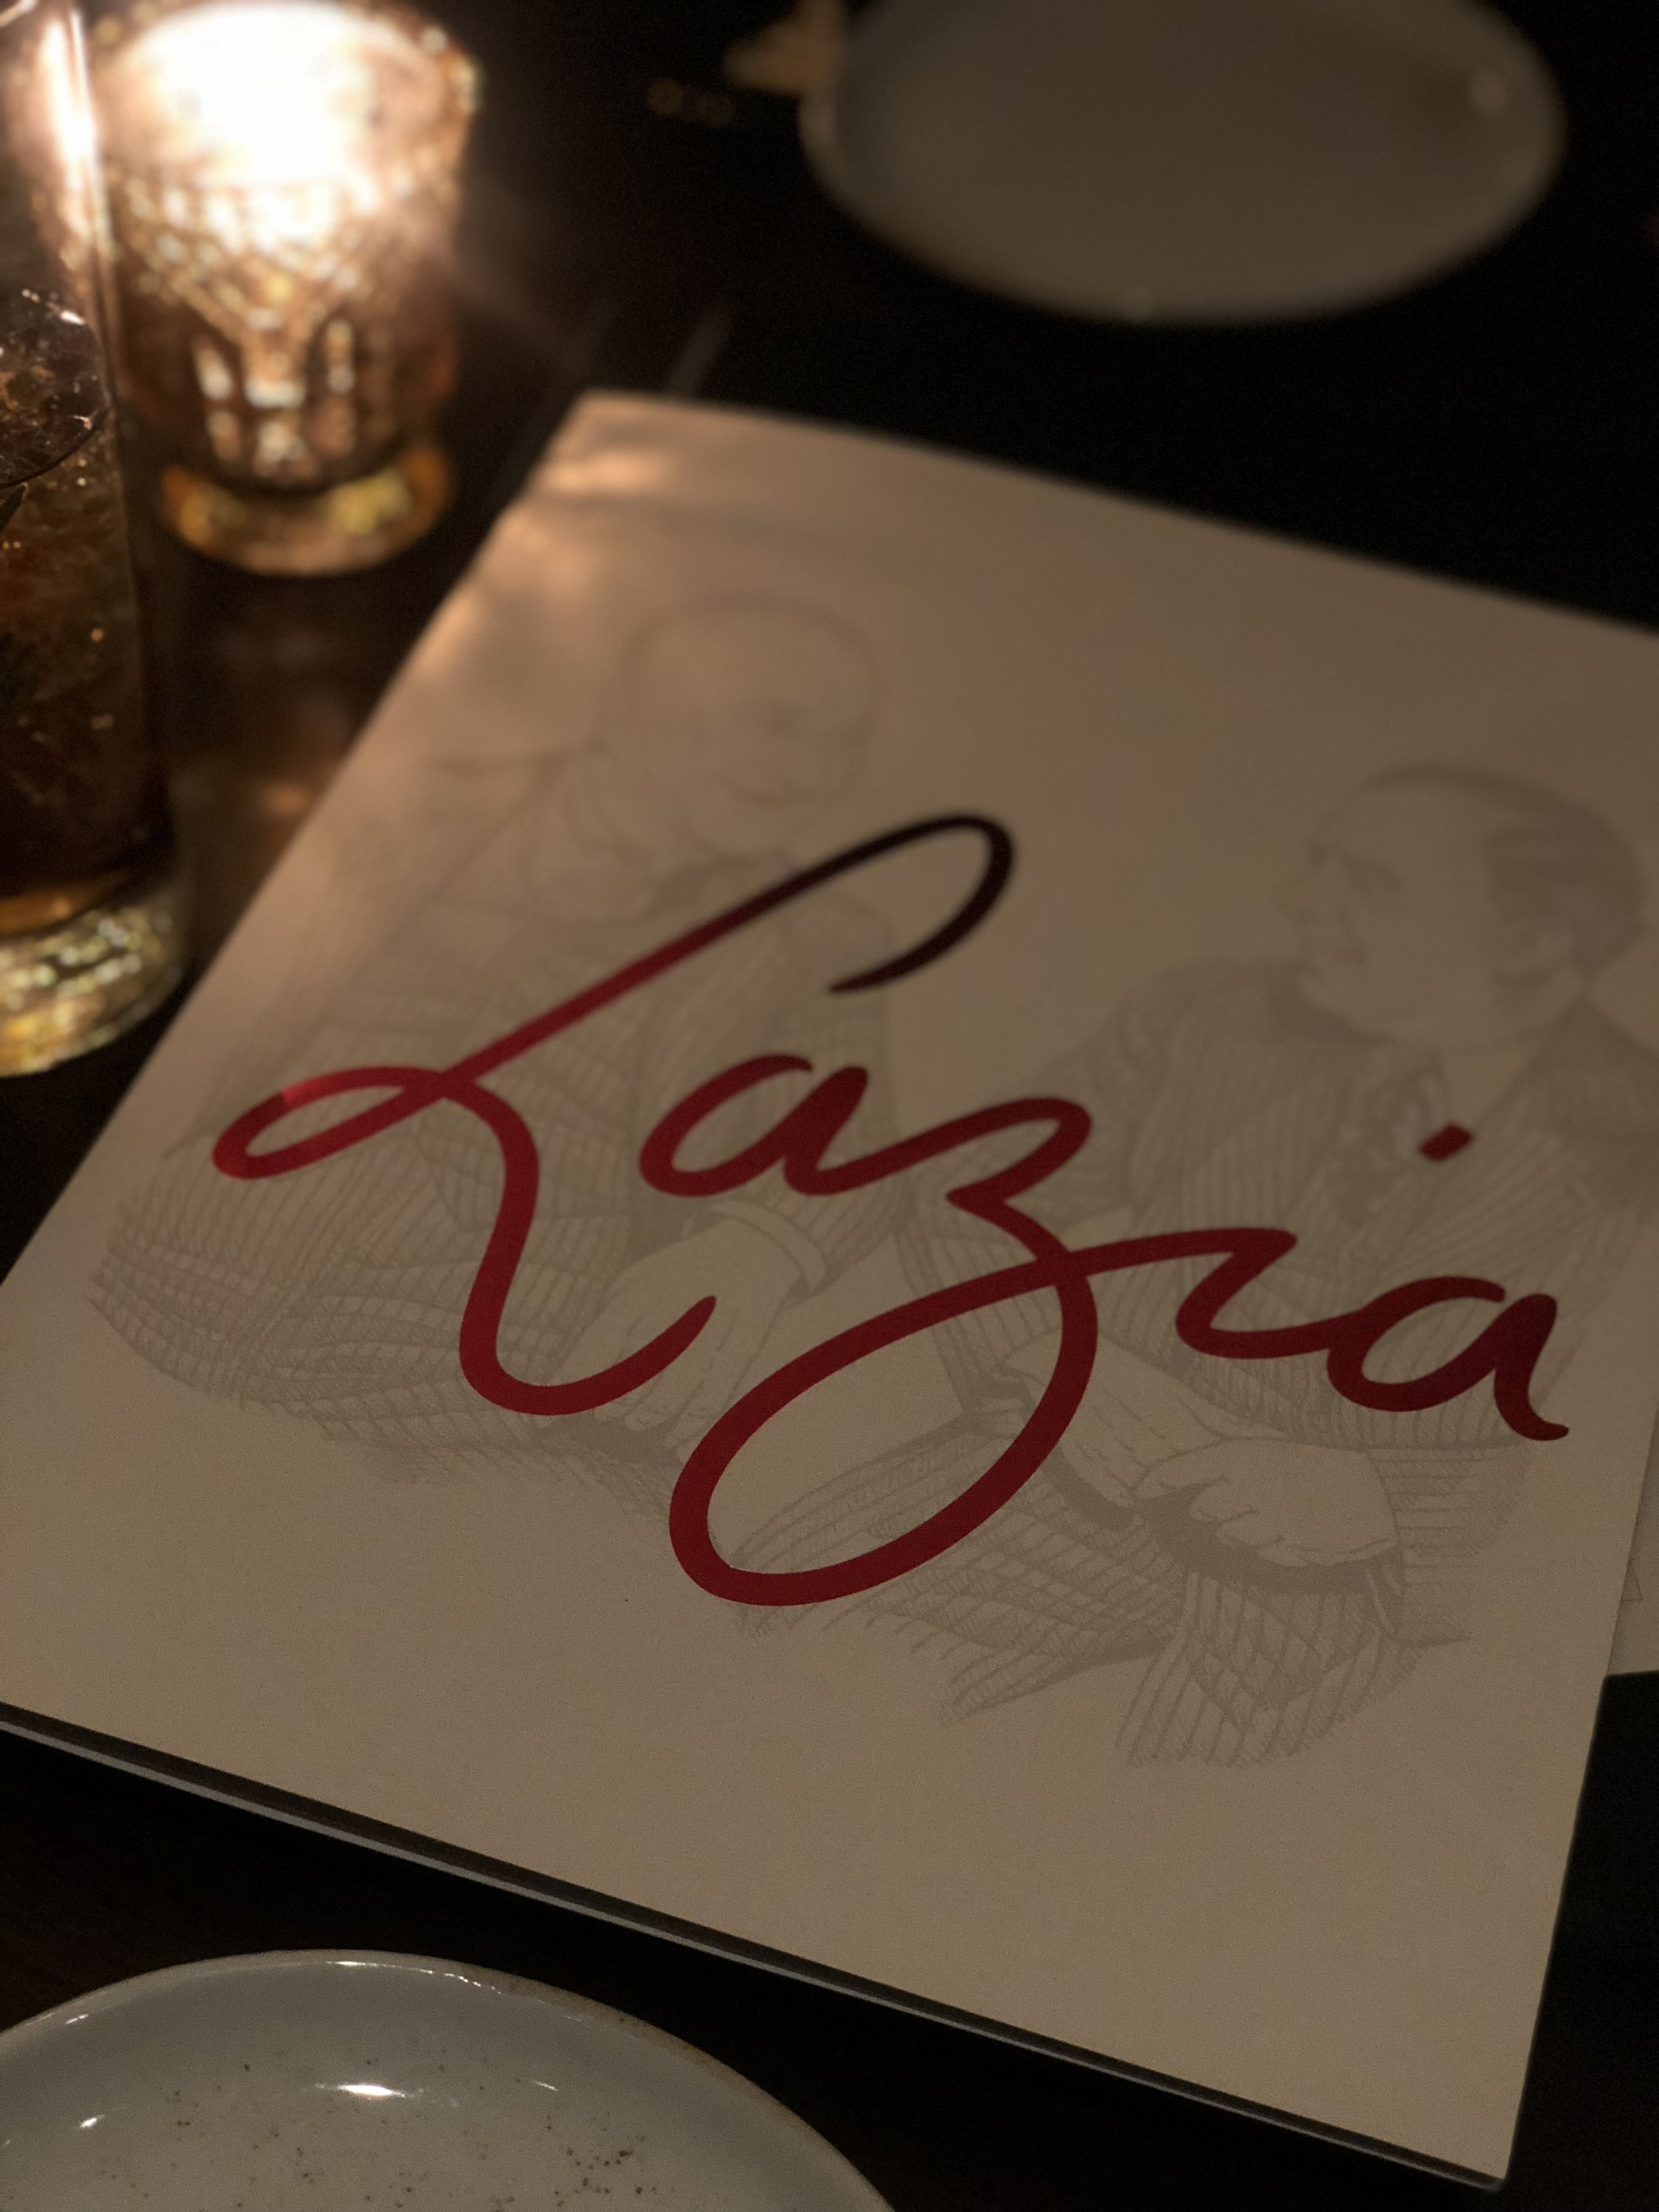 READY TO MAKE A RESERVATION? - Lazia is open for dinner Monday through Saturday from 5 to 11 pm.